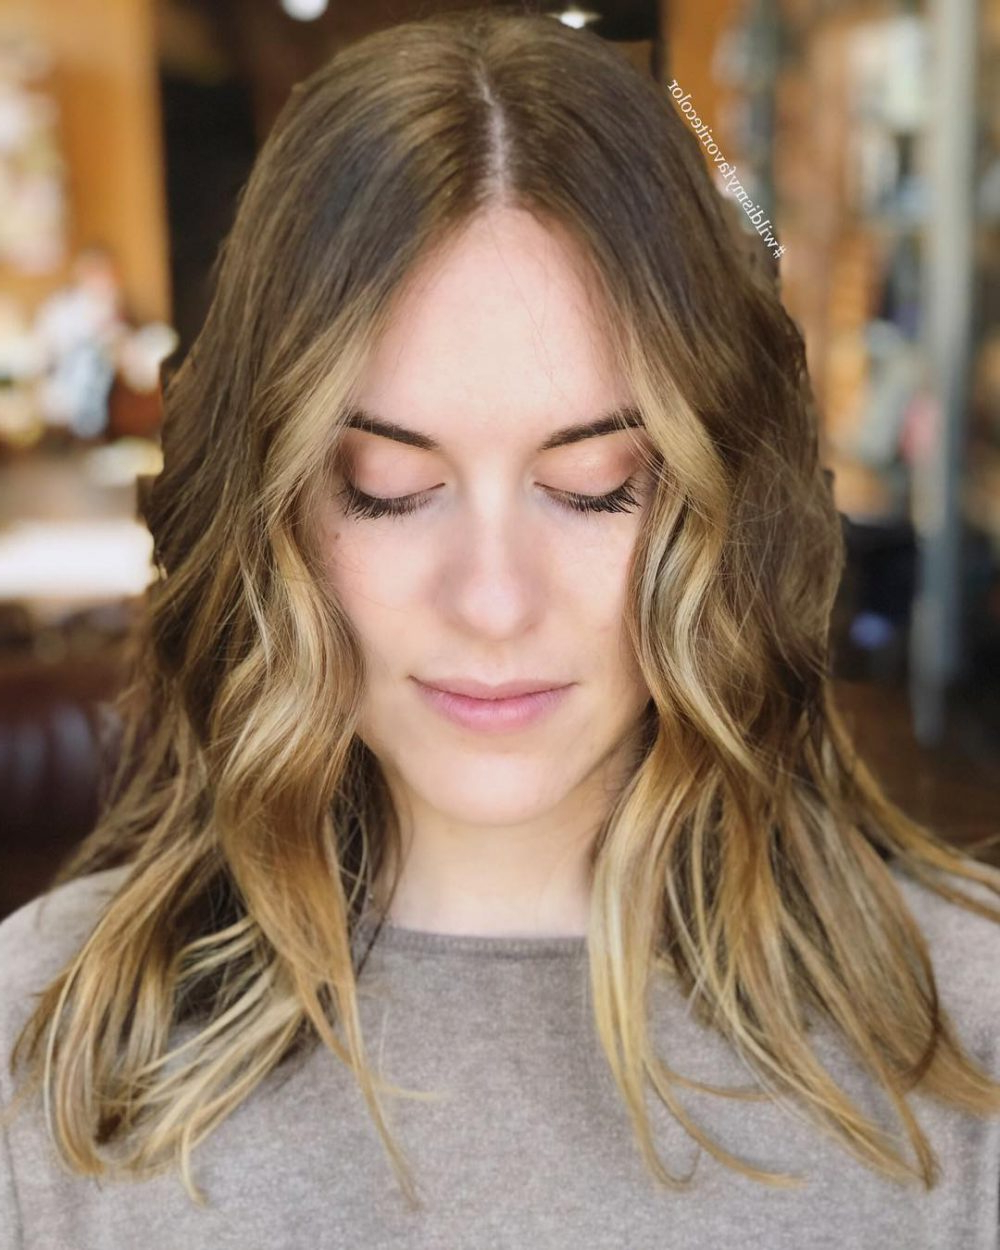 17 Flattering Medium Hairstyles For Round Faces In 2019 Pertaining To Latest Medium Haircuts For Round Faces (Gallery 1 of 20)